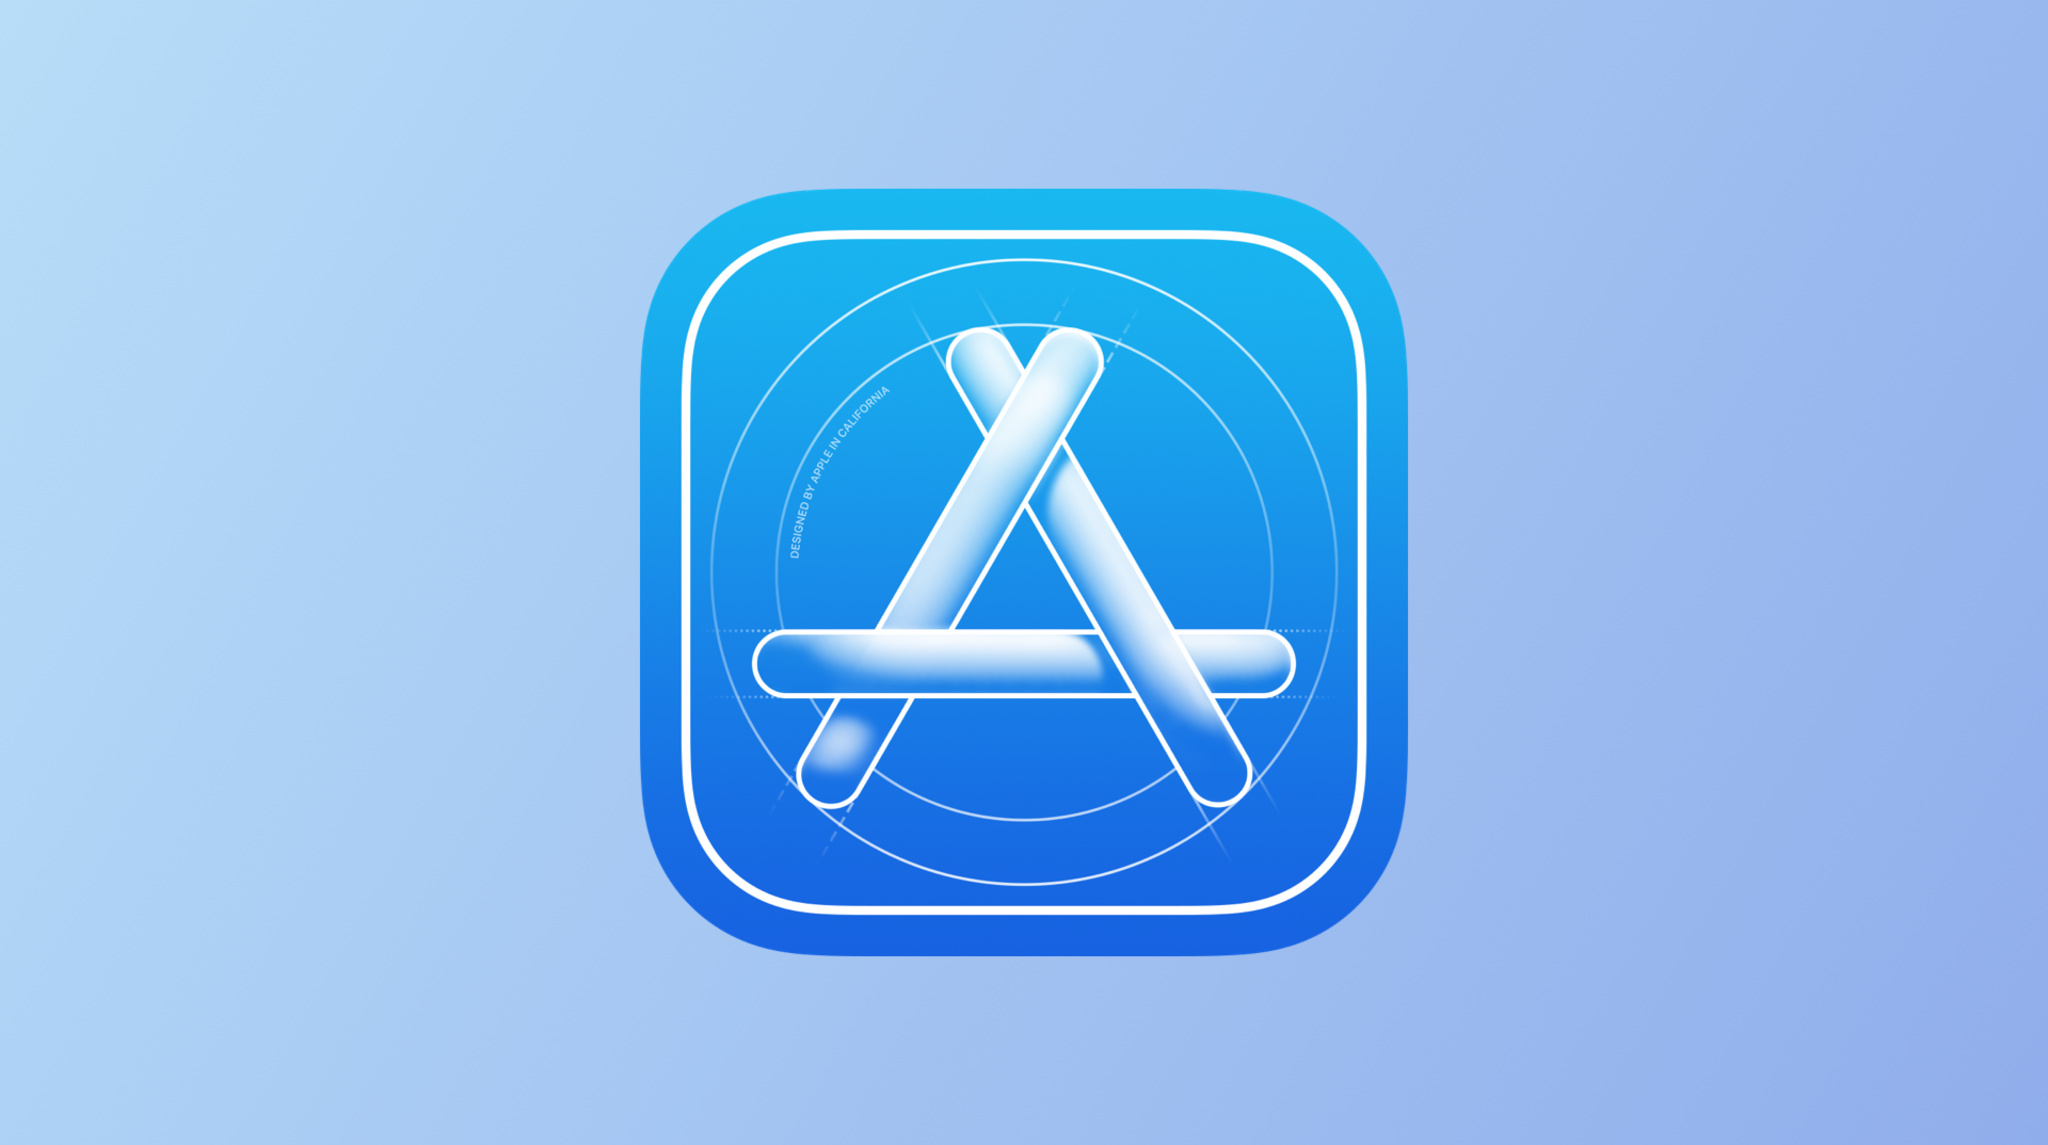 Apple developer app icon on a blue background